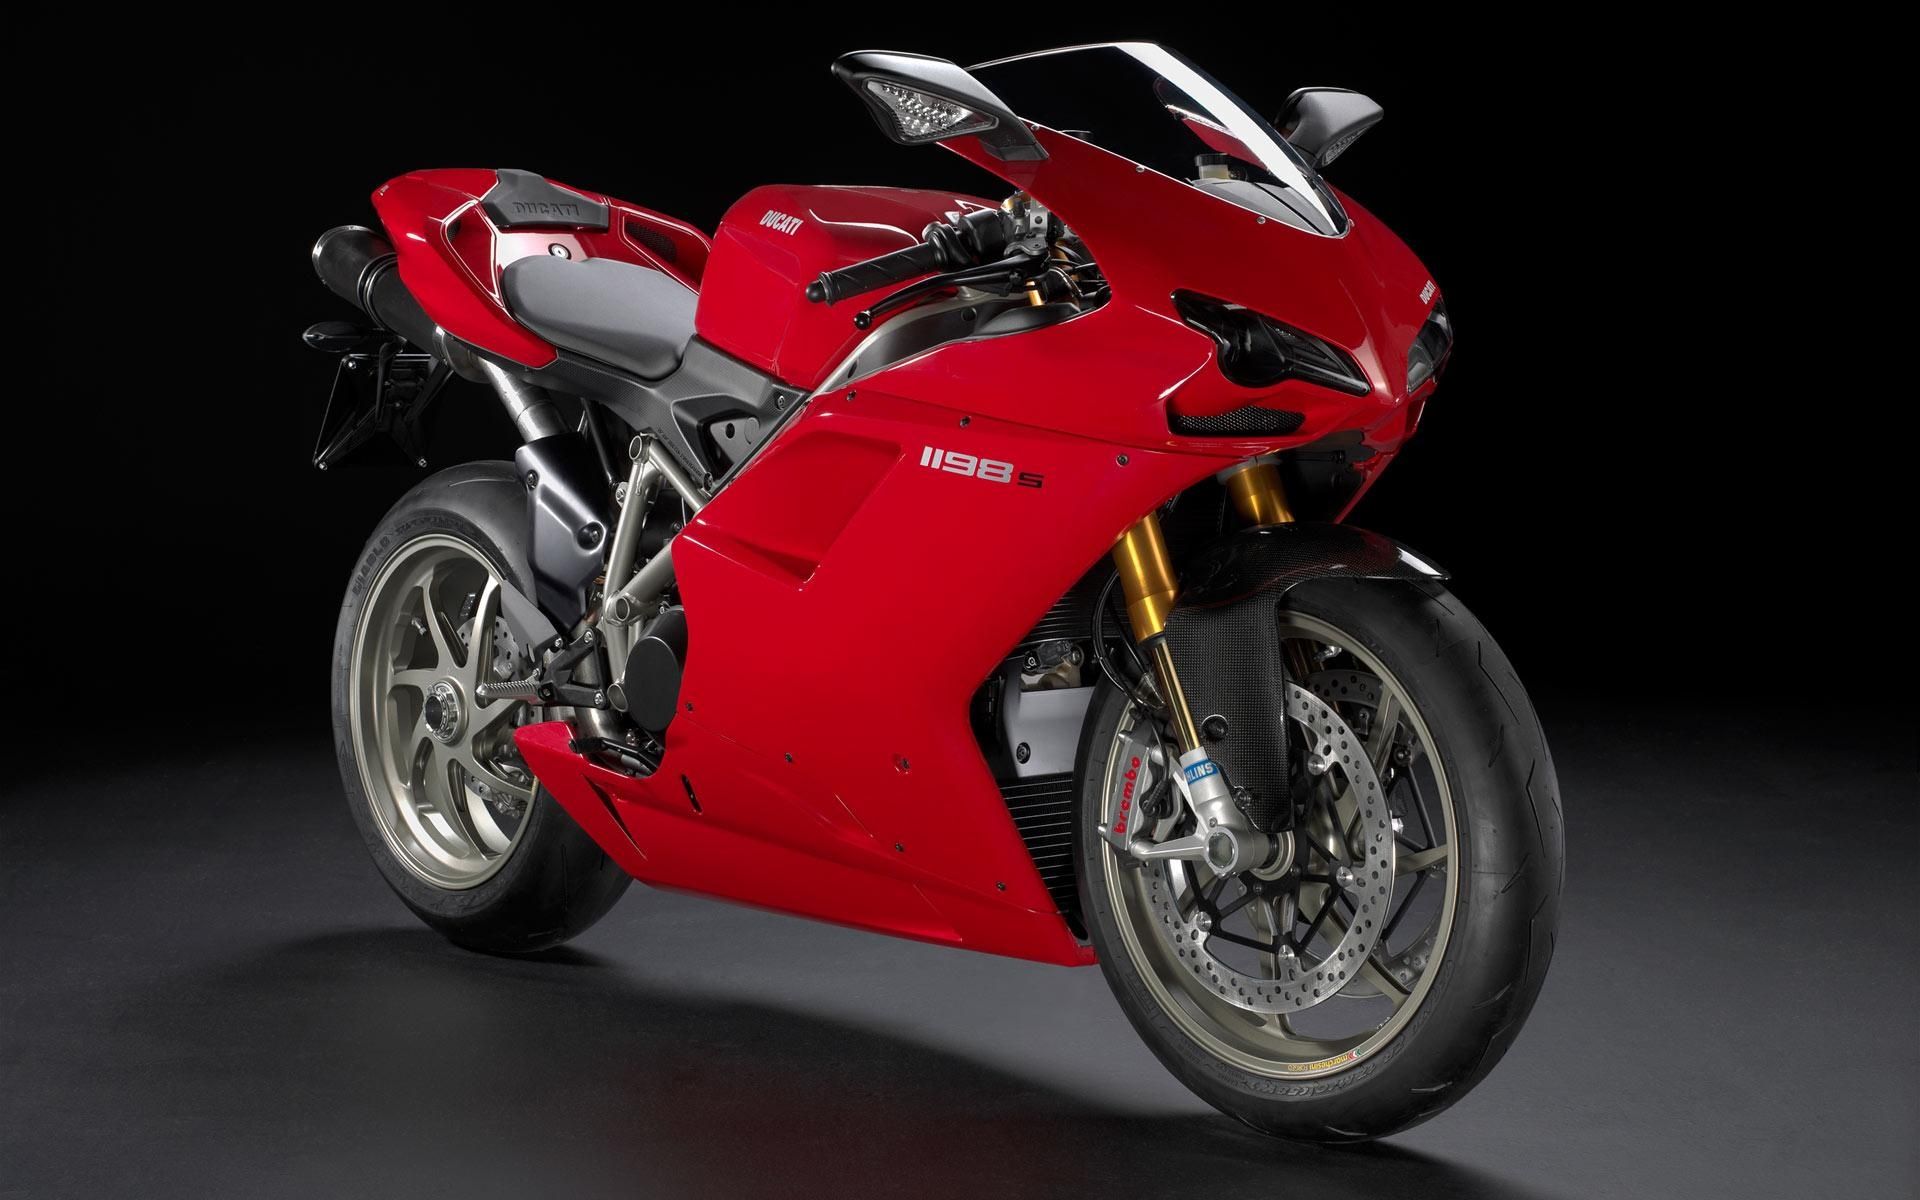 Ducati 1198S Red Wallpapers - 1920x1200 - 361302